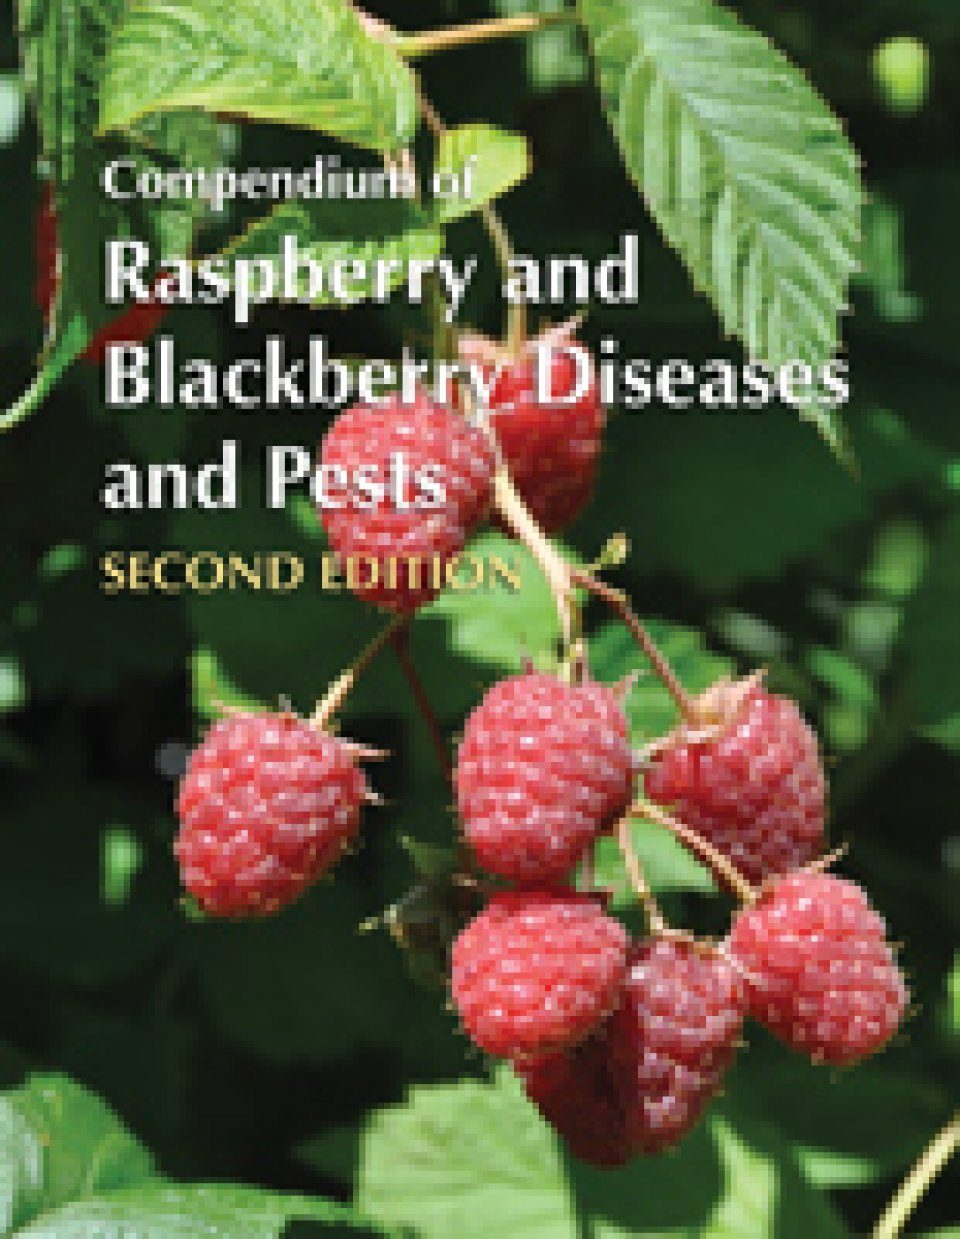 Compendium of Raspberry and Blackberry Diseases and Pests